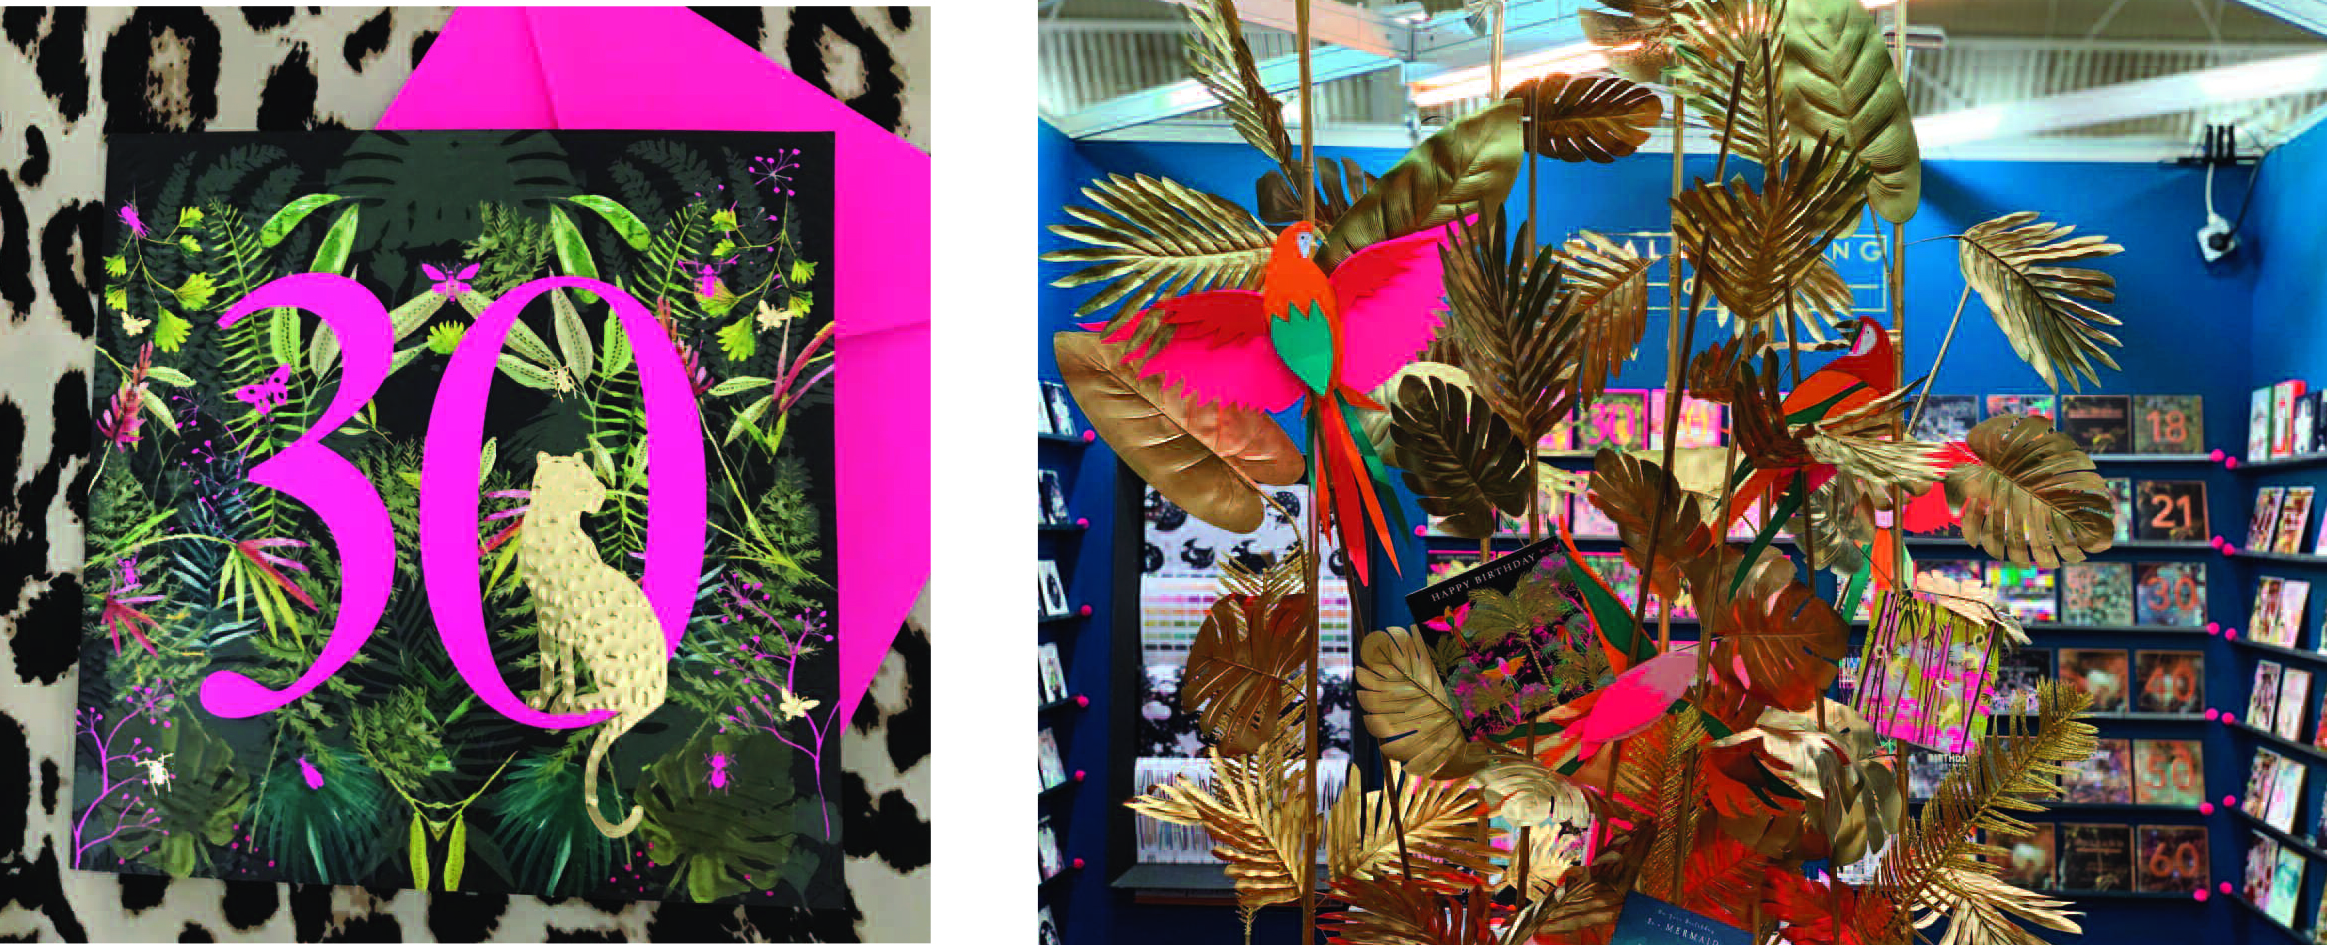 Above: One of the designs from Real & Exciting's Fleur Panache collection and the eye catching tropical centrepiece used on the stand that will be resurrected at Spirito.